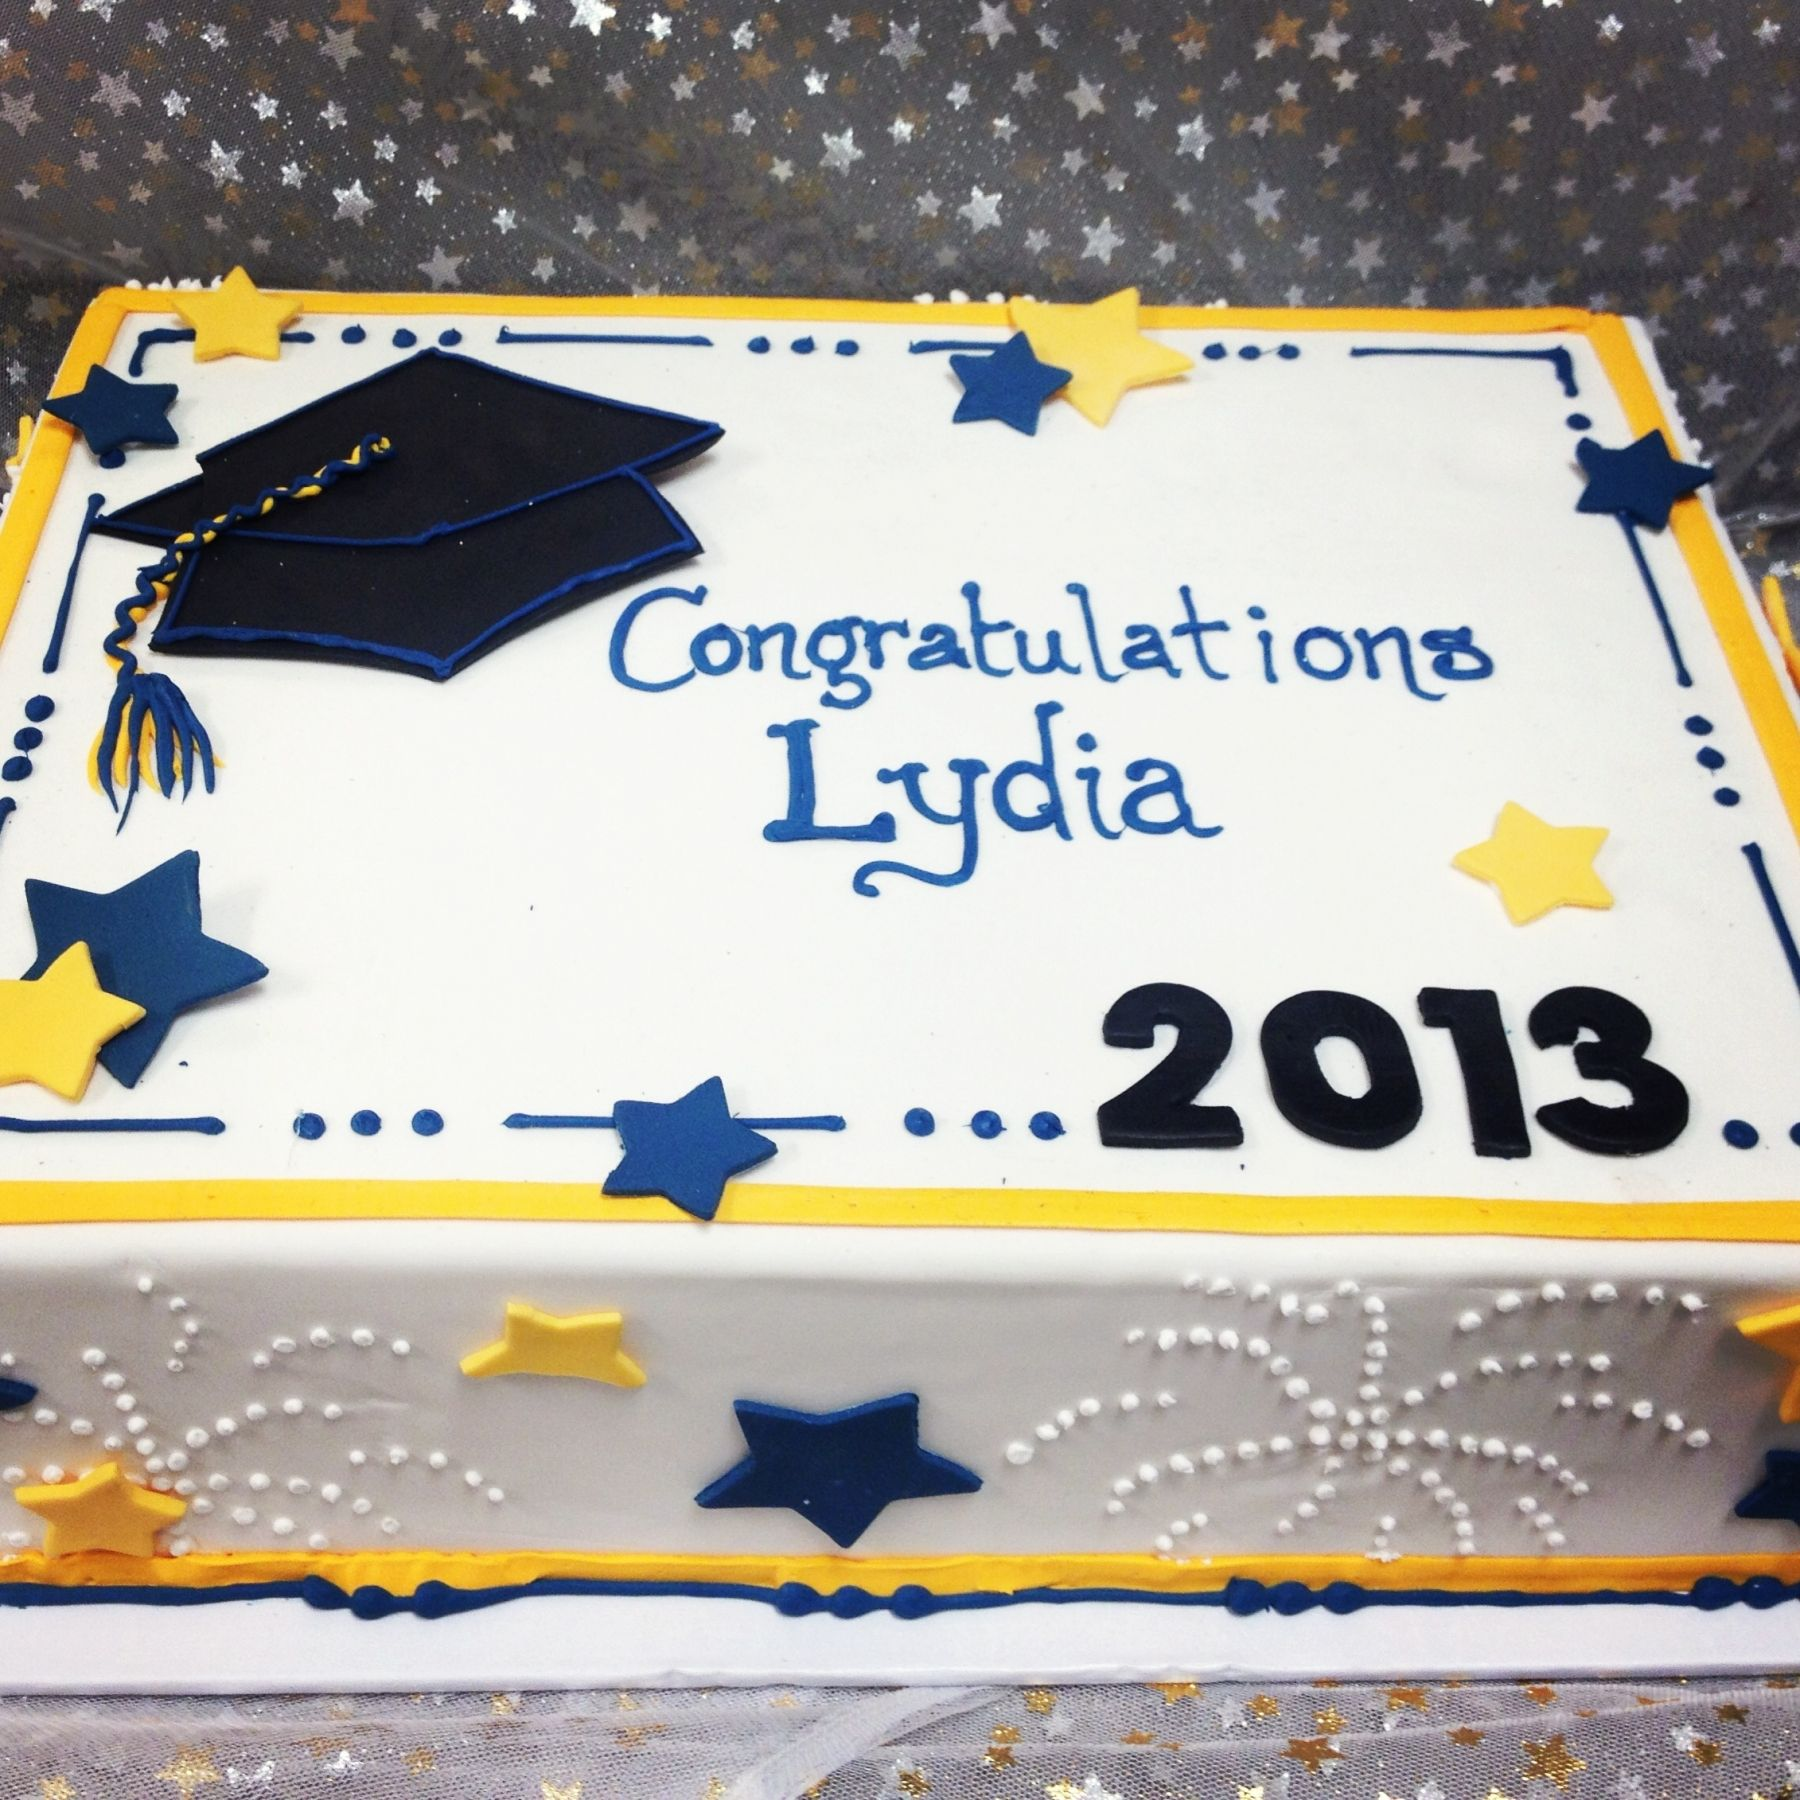 Graduation Cakes Graduation 2013 Shown As Half Sheet Cake 50 60